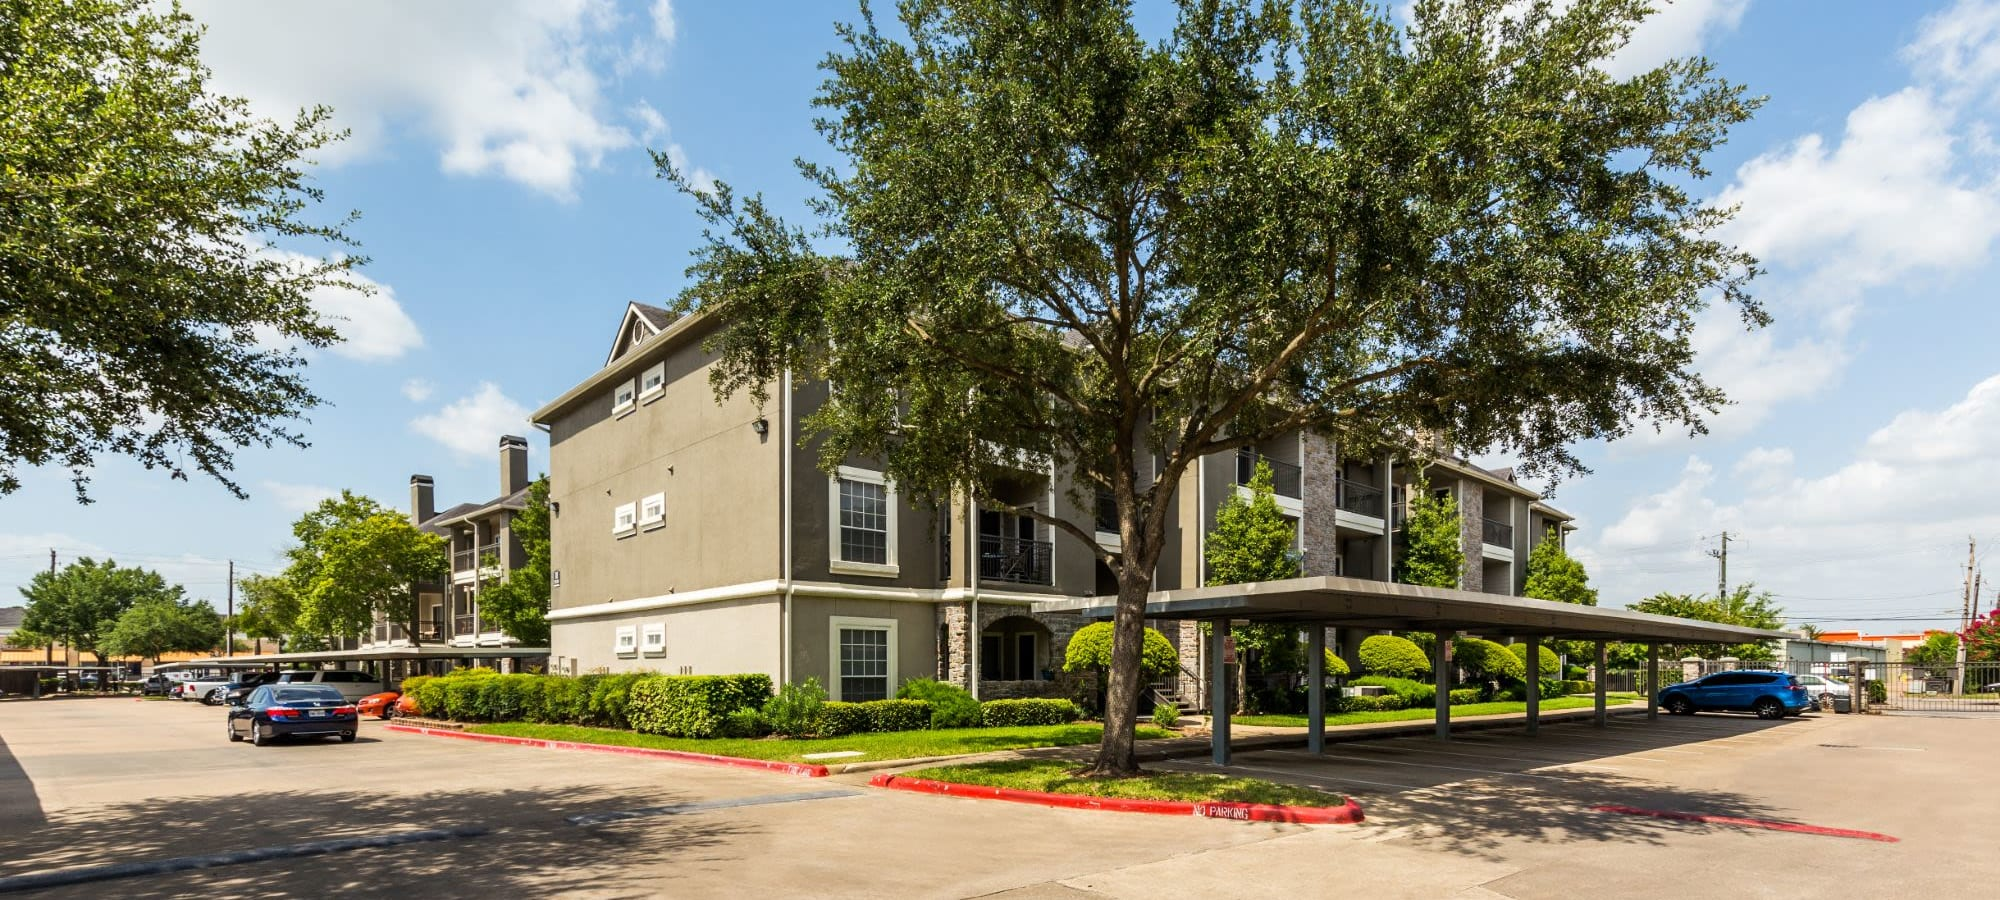 Apply to live at Marquis on Westheimer in Houston, Texas